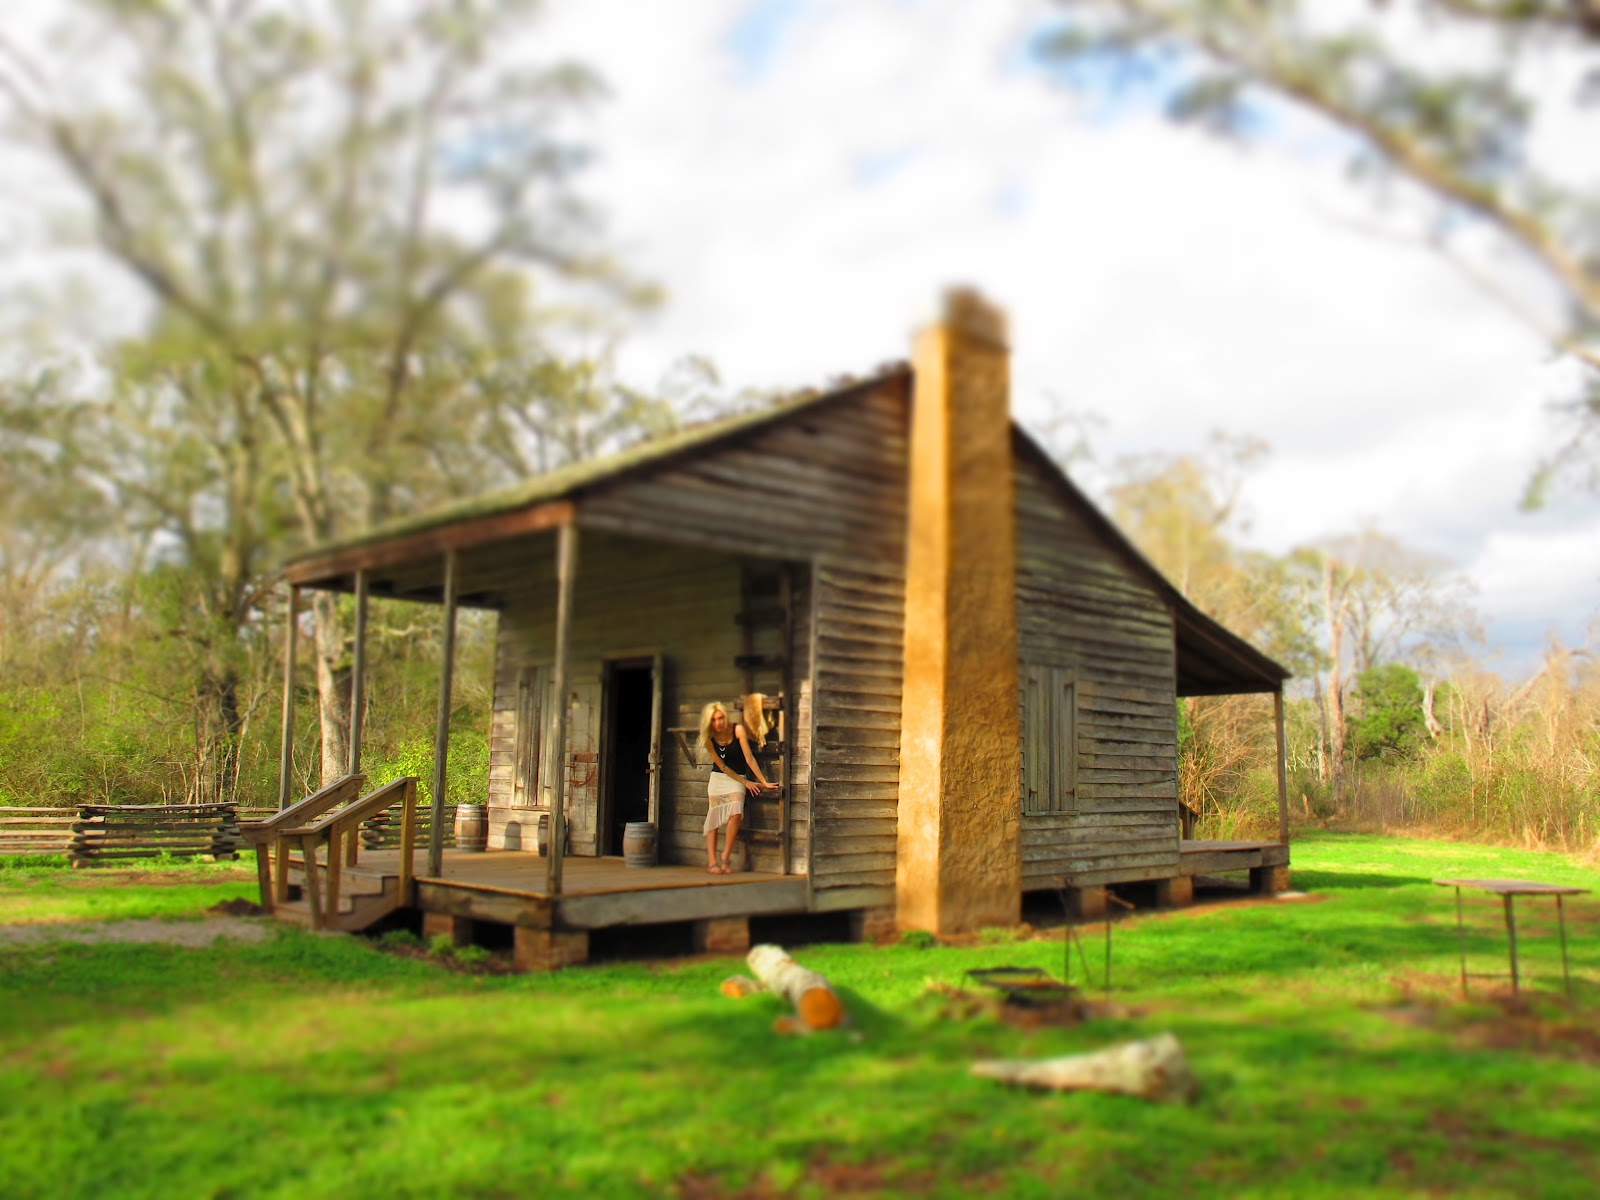 1000 images about cajun loves on pinterest canes for Cajun cottages